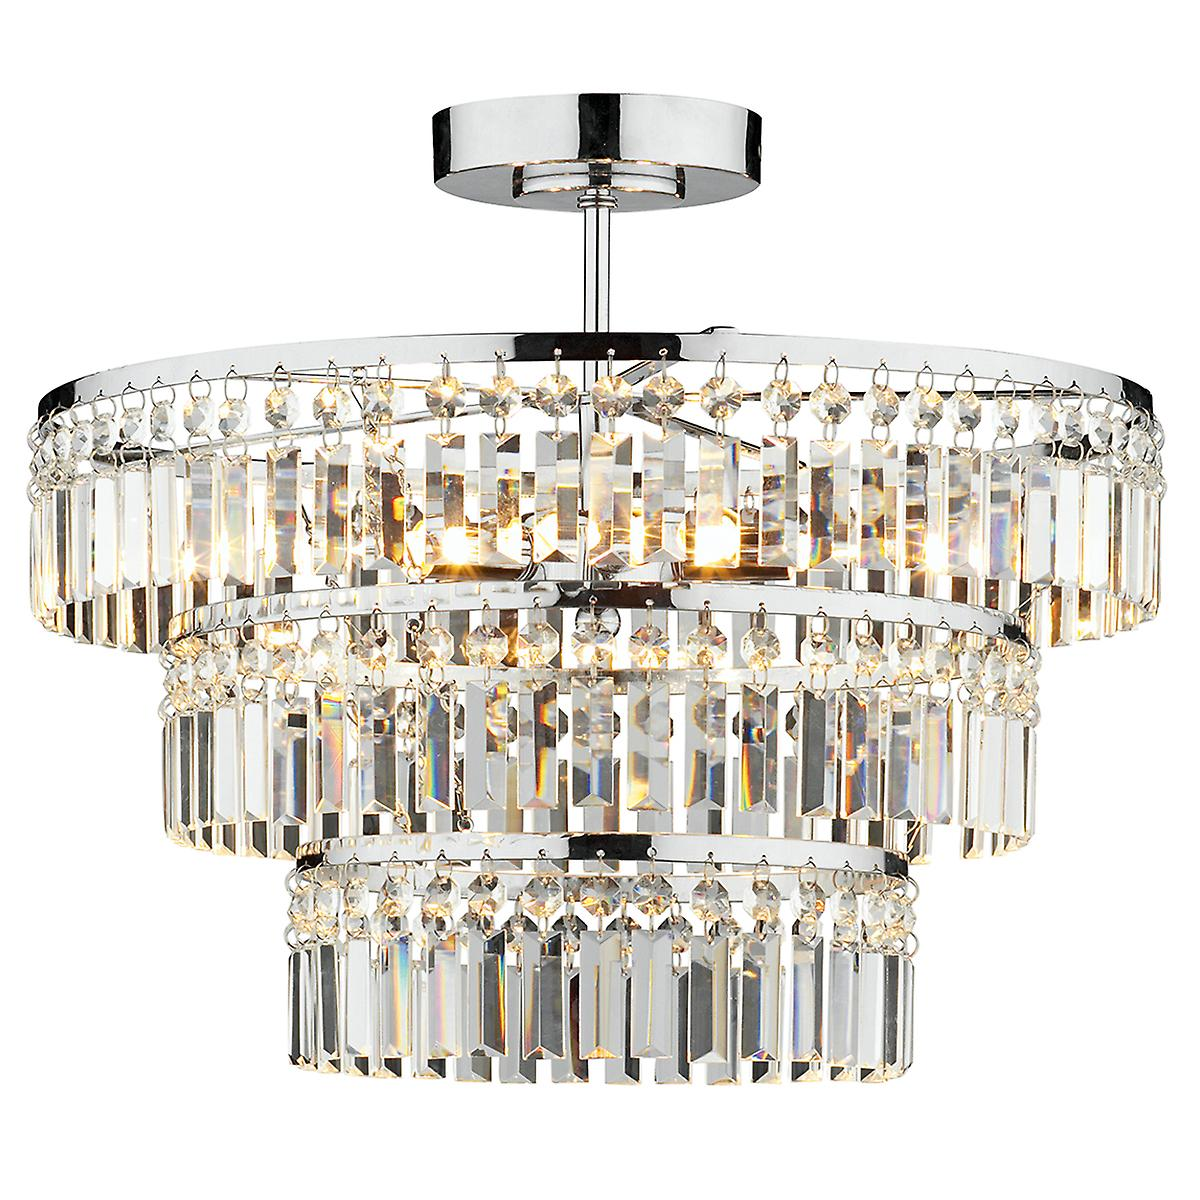 Dar ROW5450 Rowena 3 Light 3 Tier Semi-Flush Polished Chrome